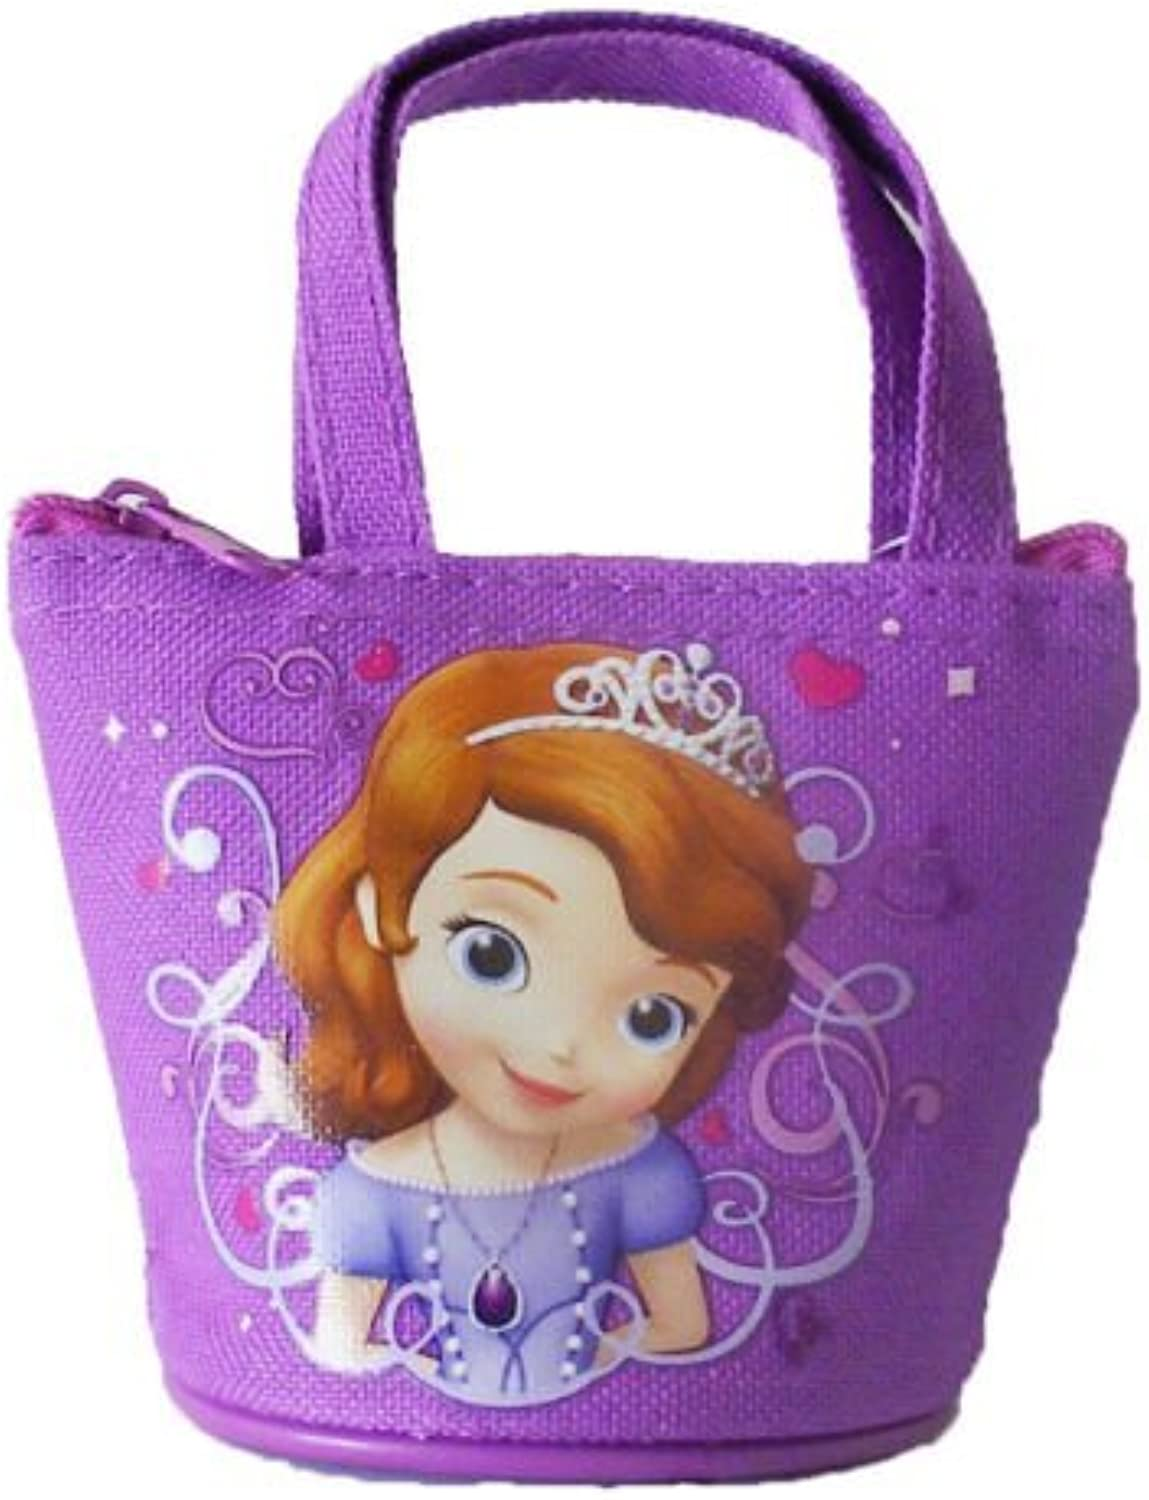 Disney Princess Sofia Mini Coin Purse (lila) by Disney